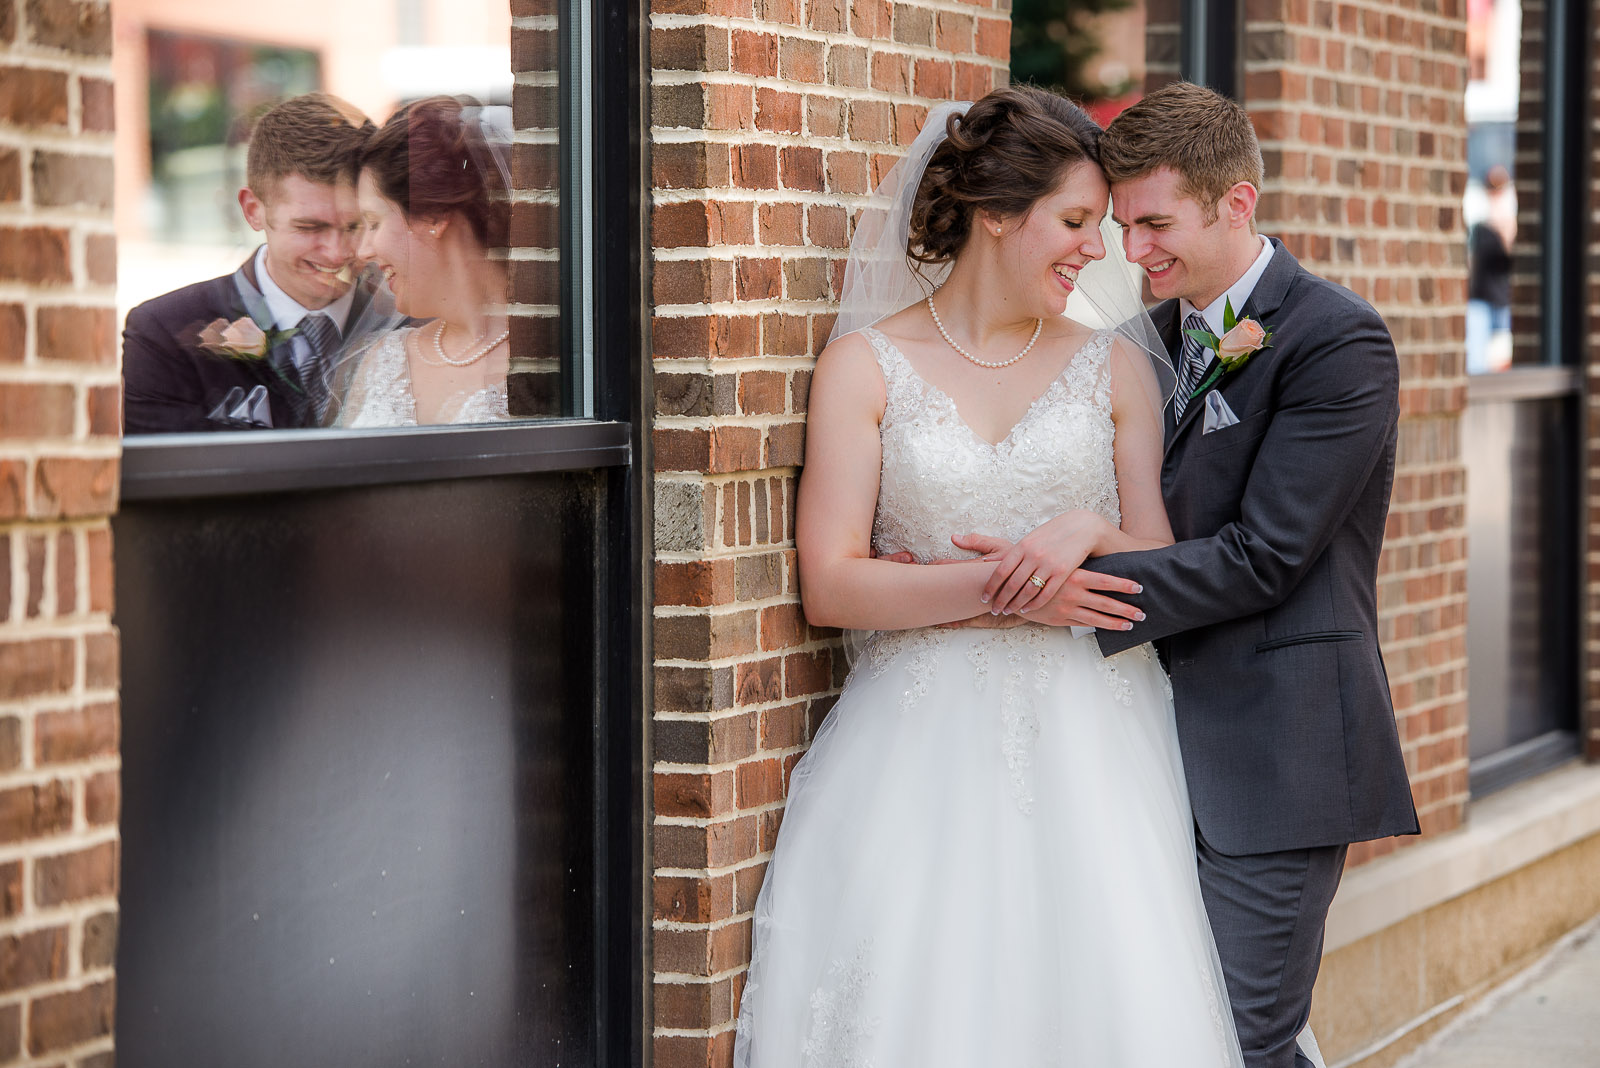 Eric_and_Christy_Photography_Blog_Wedding_Kelly_Michael-45